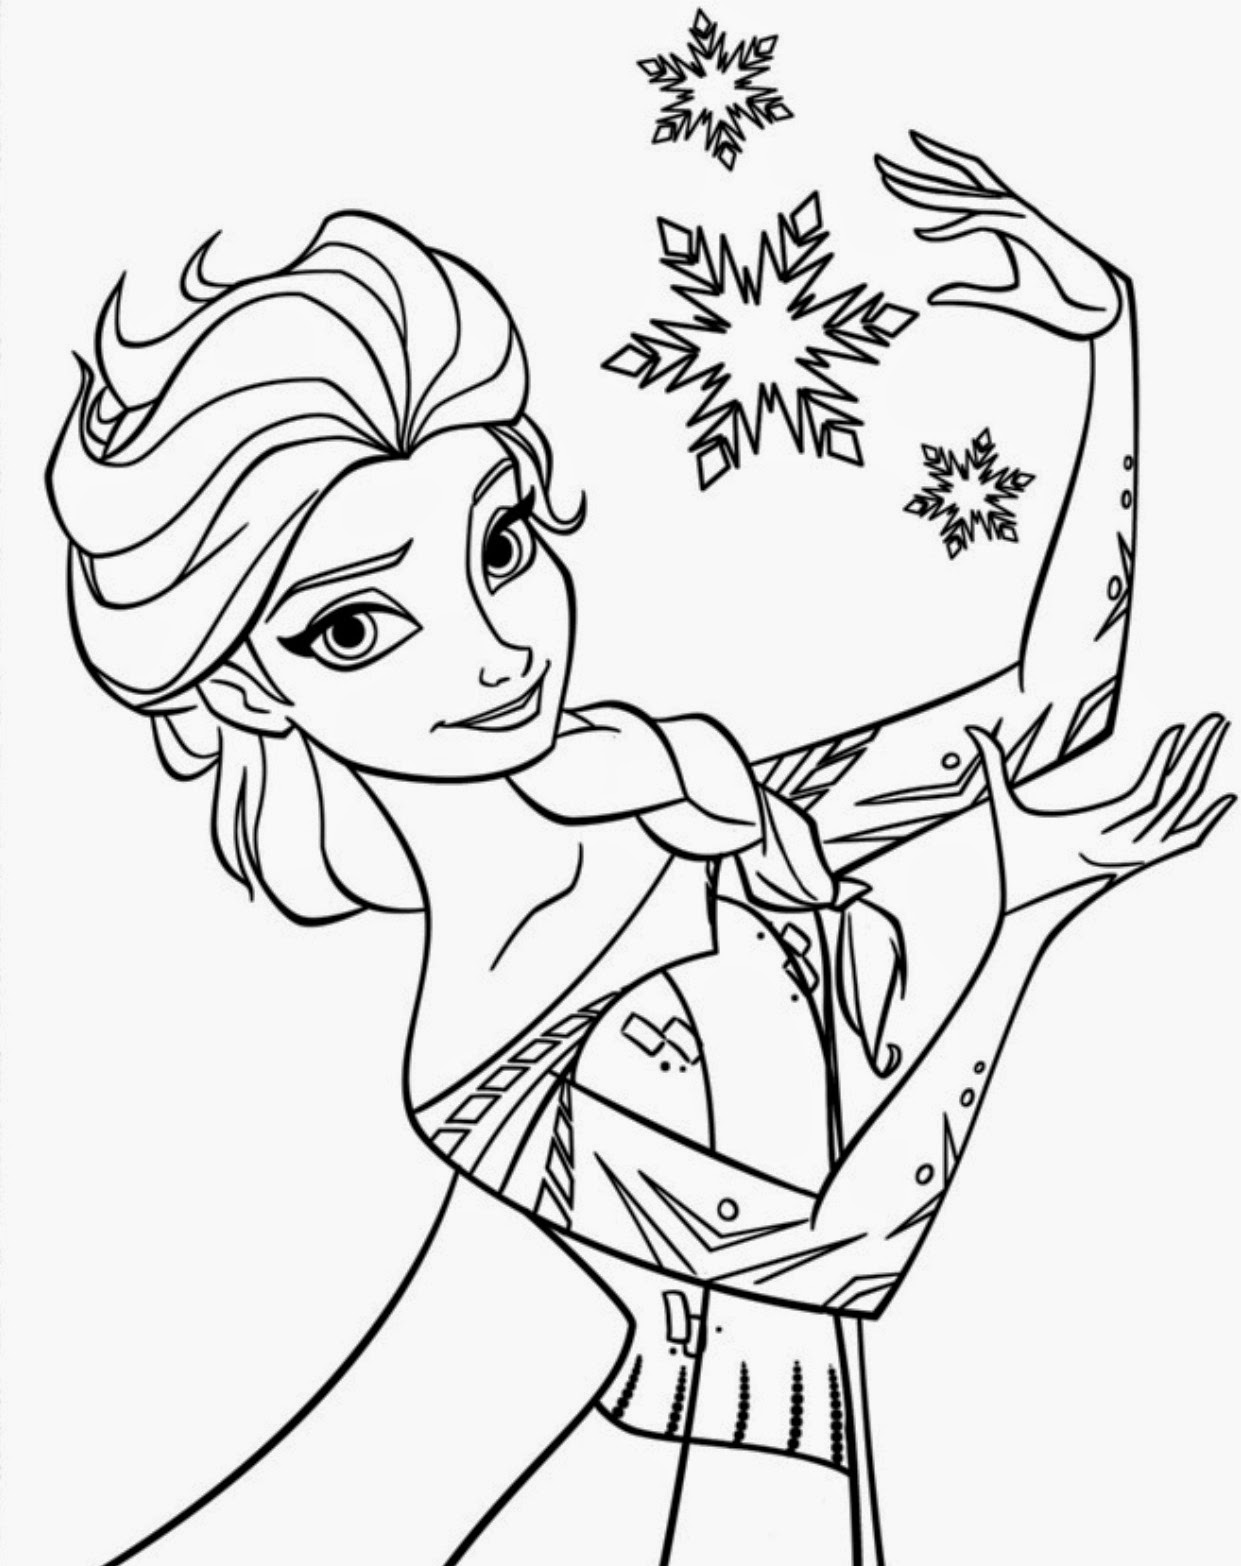 free printable colouring pages frozen frozen 2 coloring pages into the unknown colouring mermaid pages free printable colouring frozen